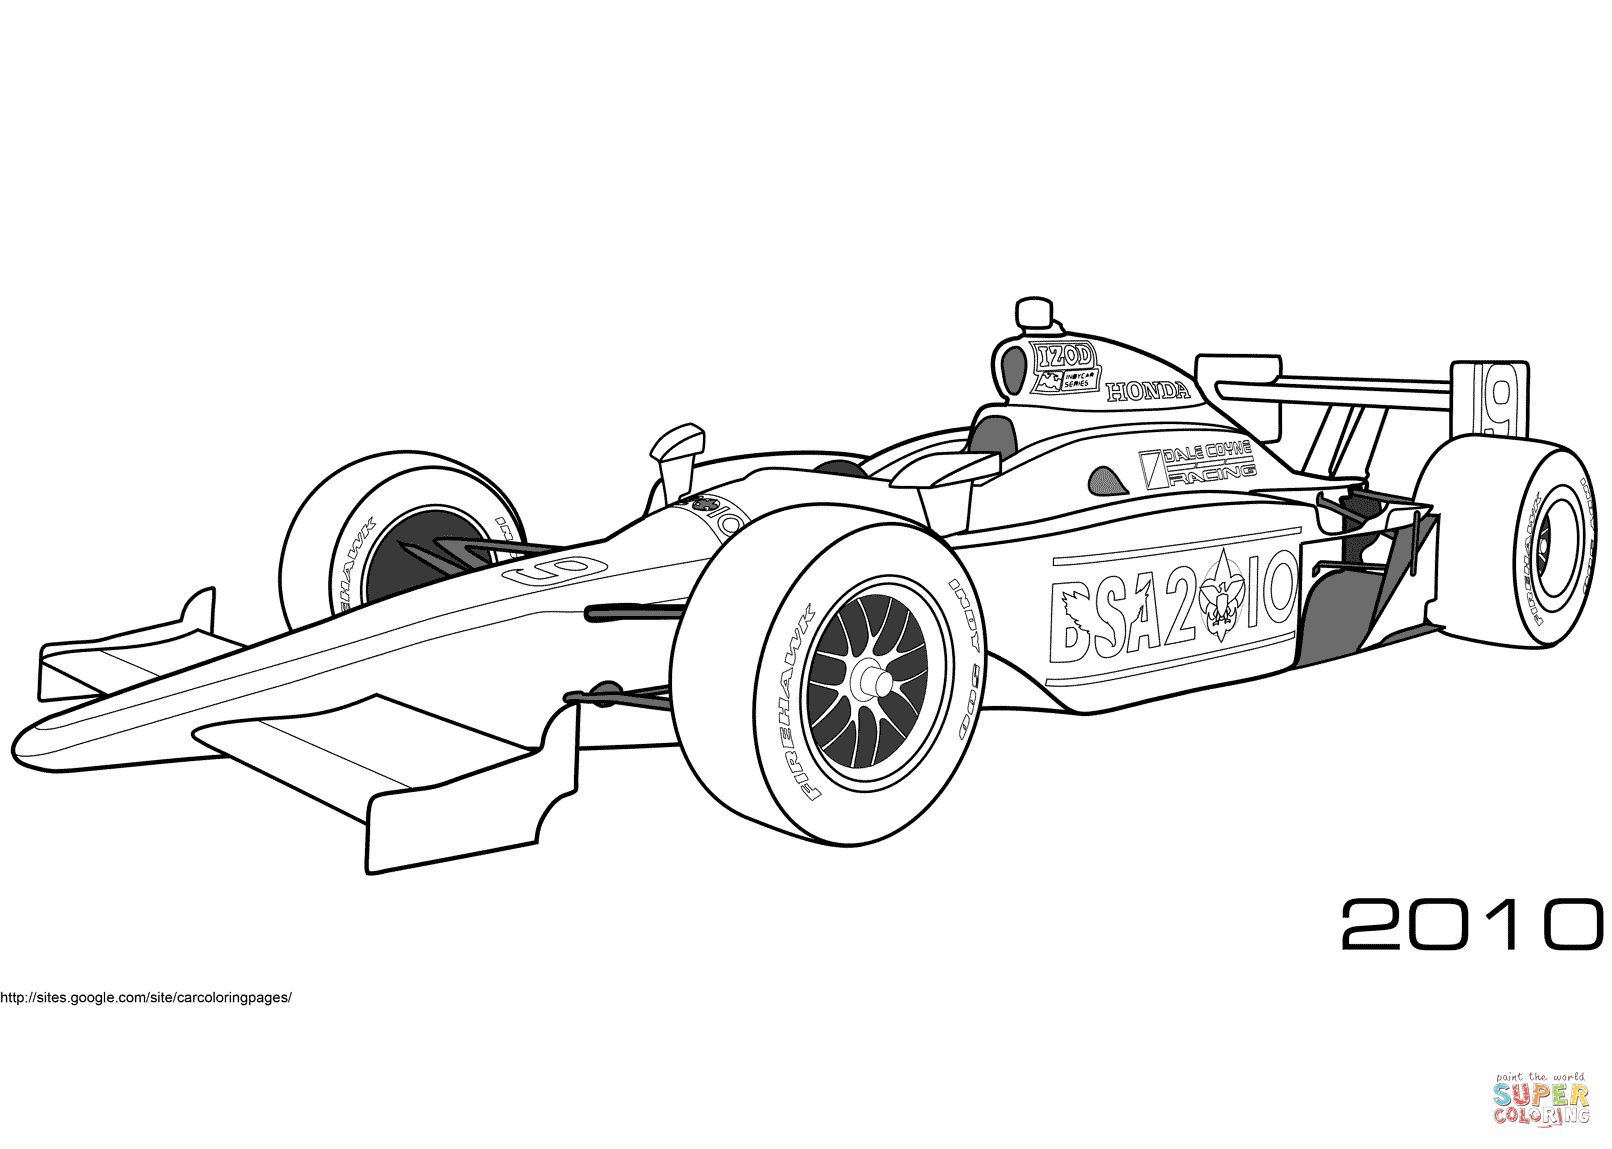 Dale Coyne Racing Bsa Indy Car Coloring Page